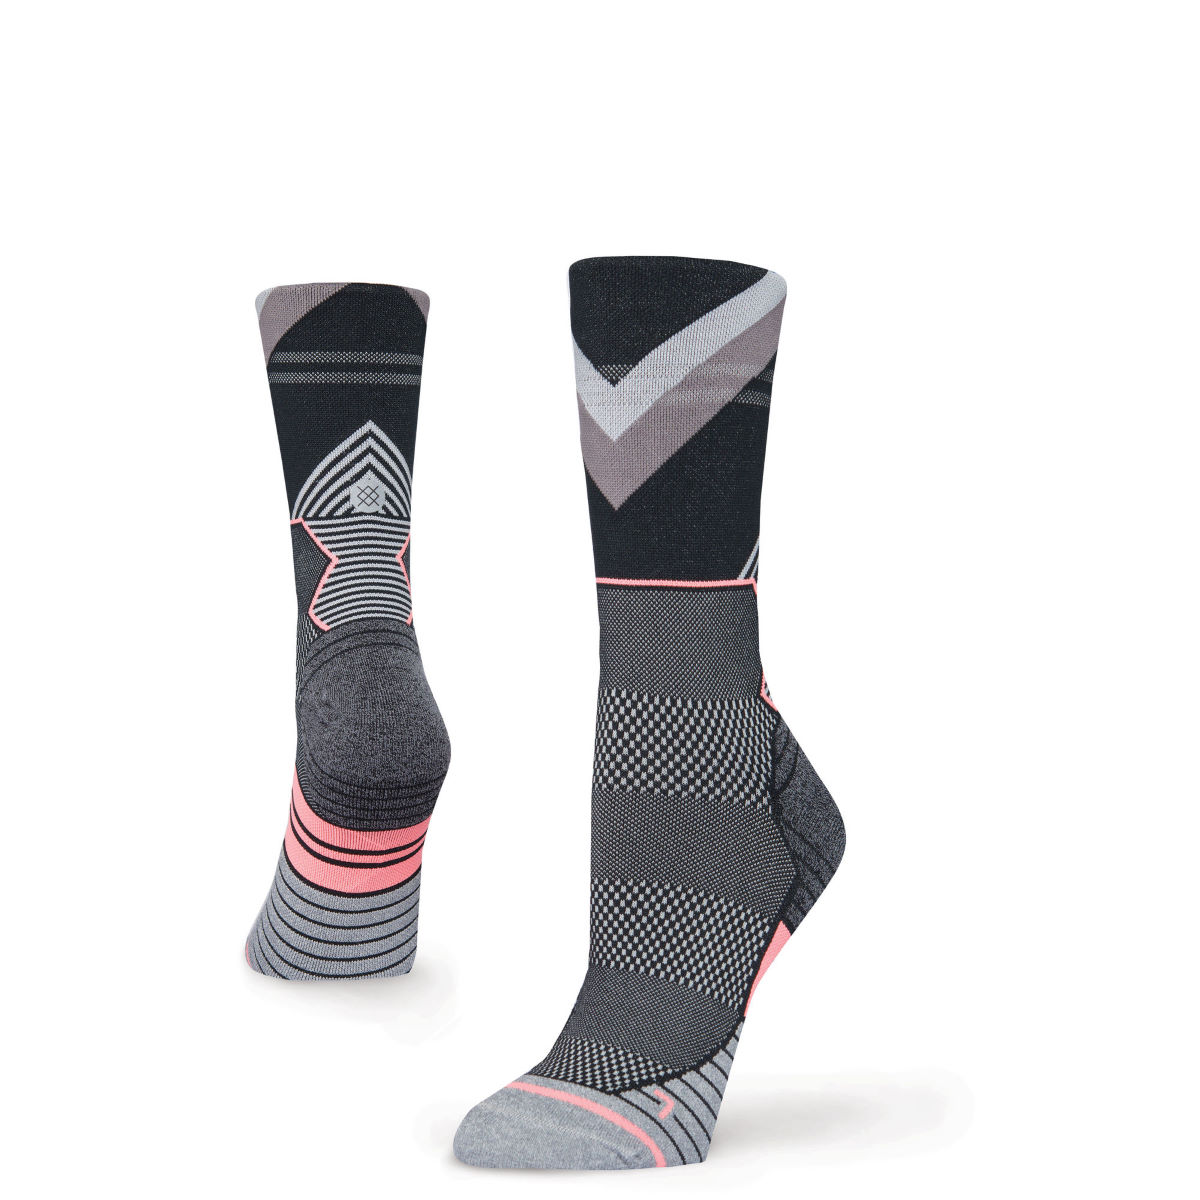 Calcetines Stance Windy Run para mujer - Calcetines